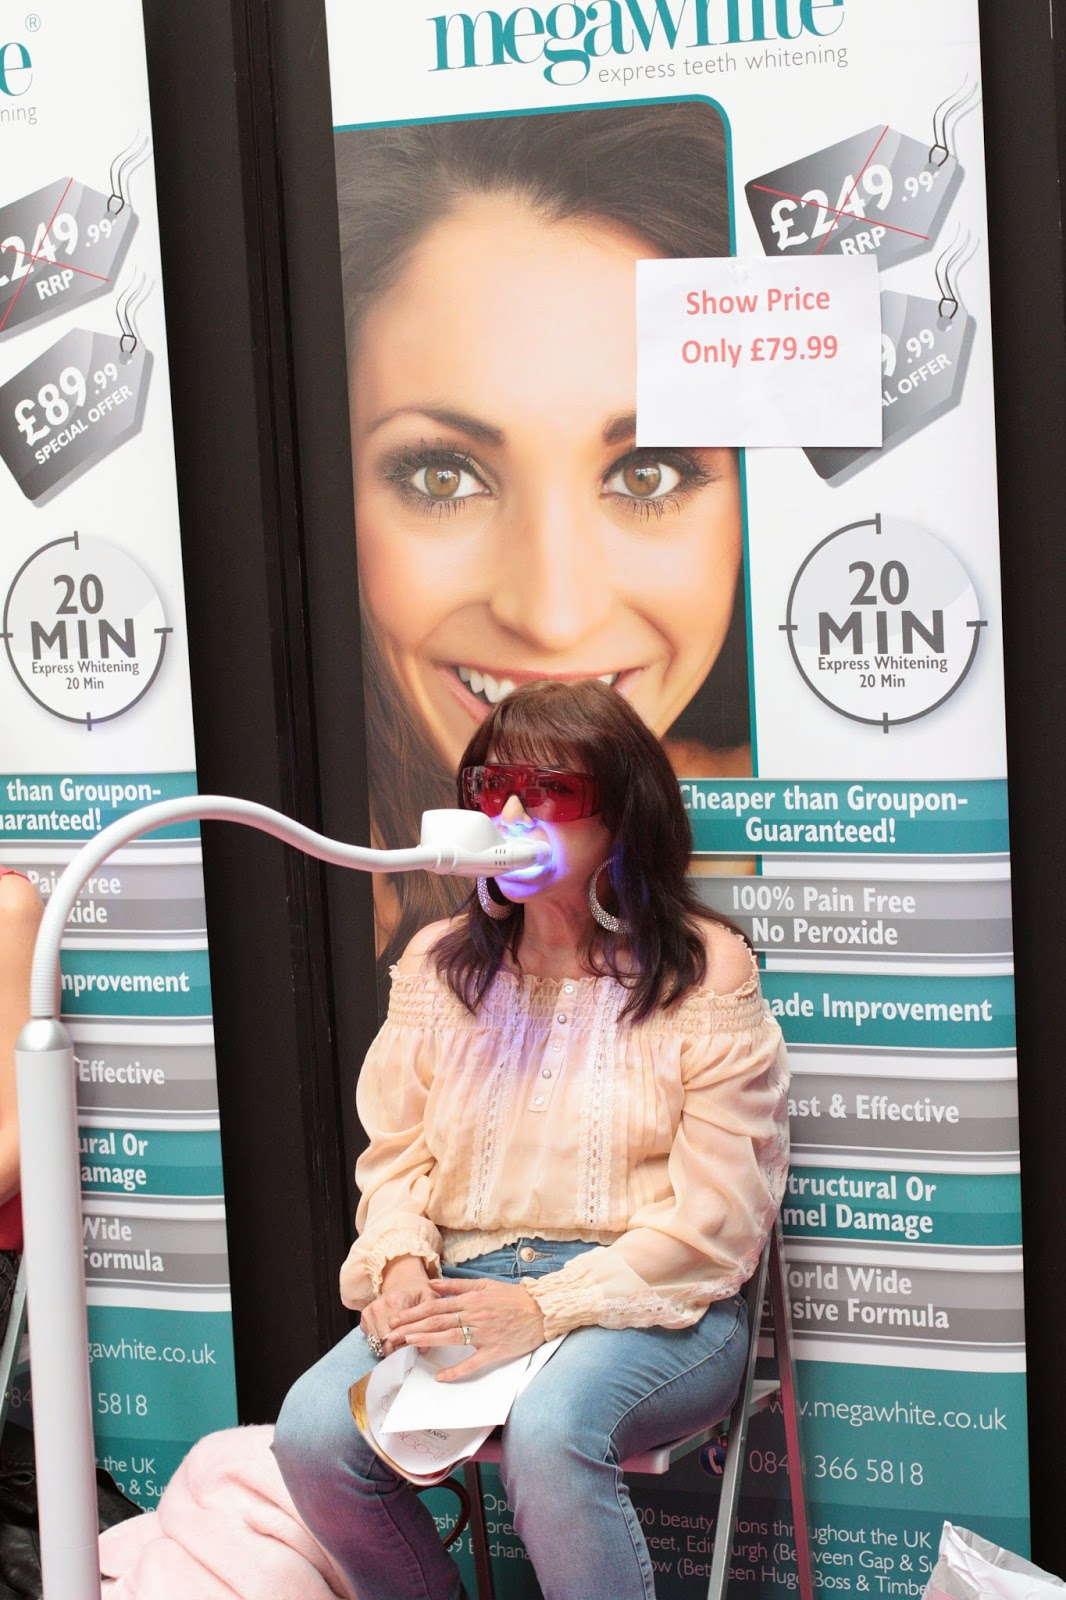 Teeth whitening at the anti-ageing show